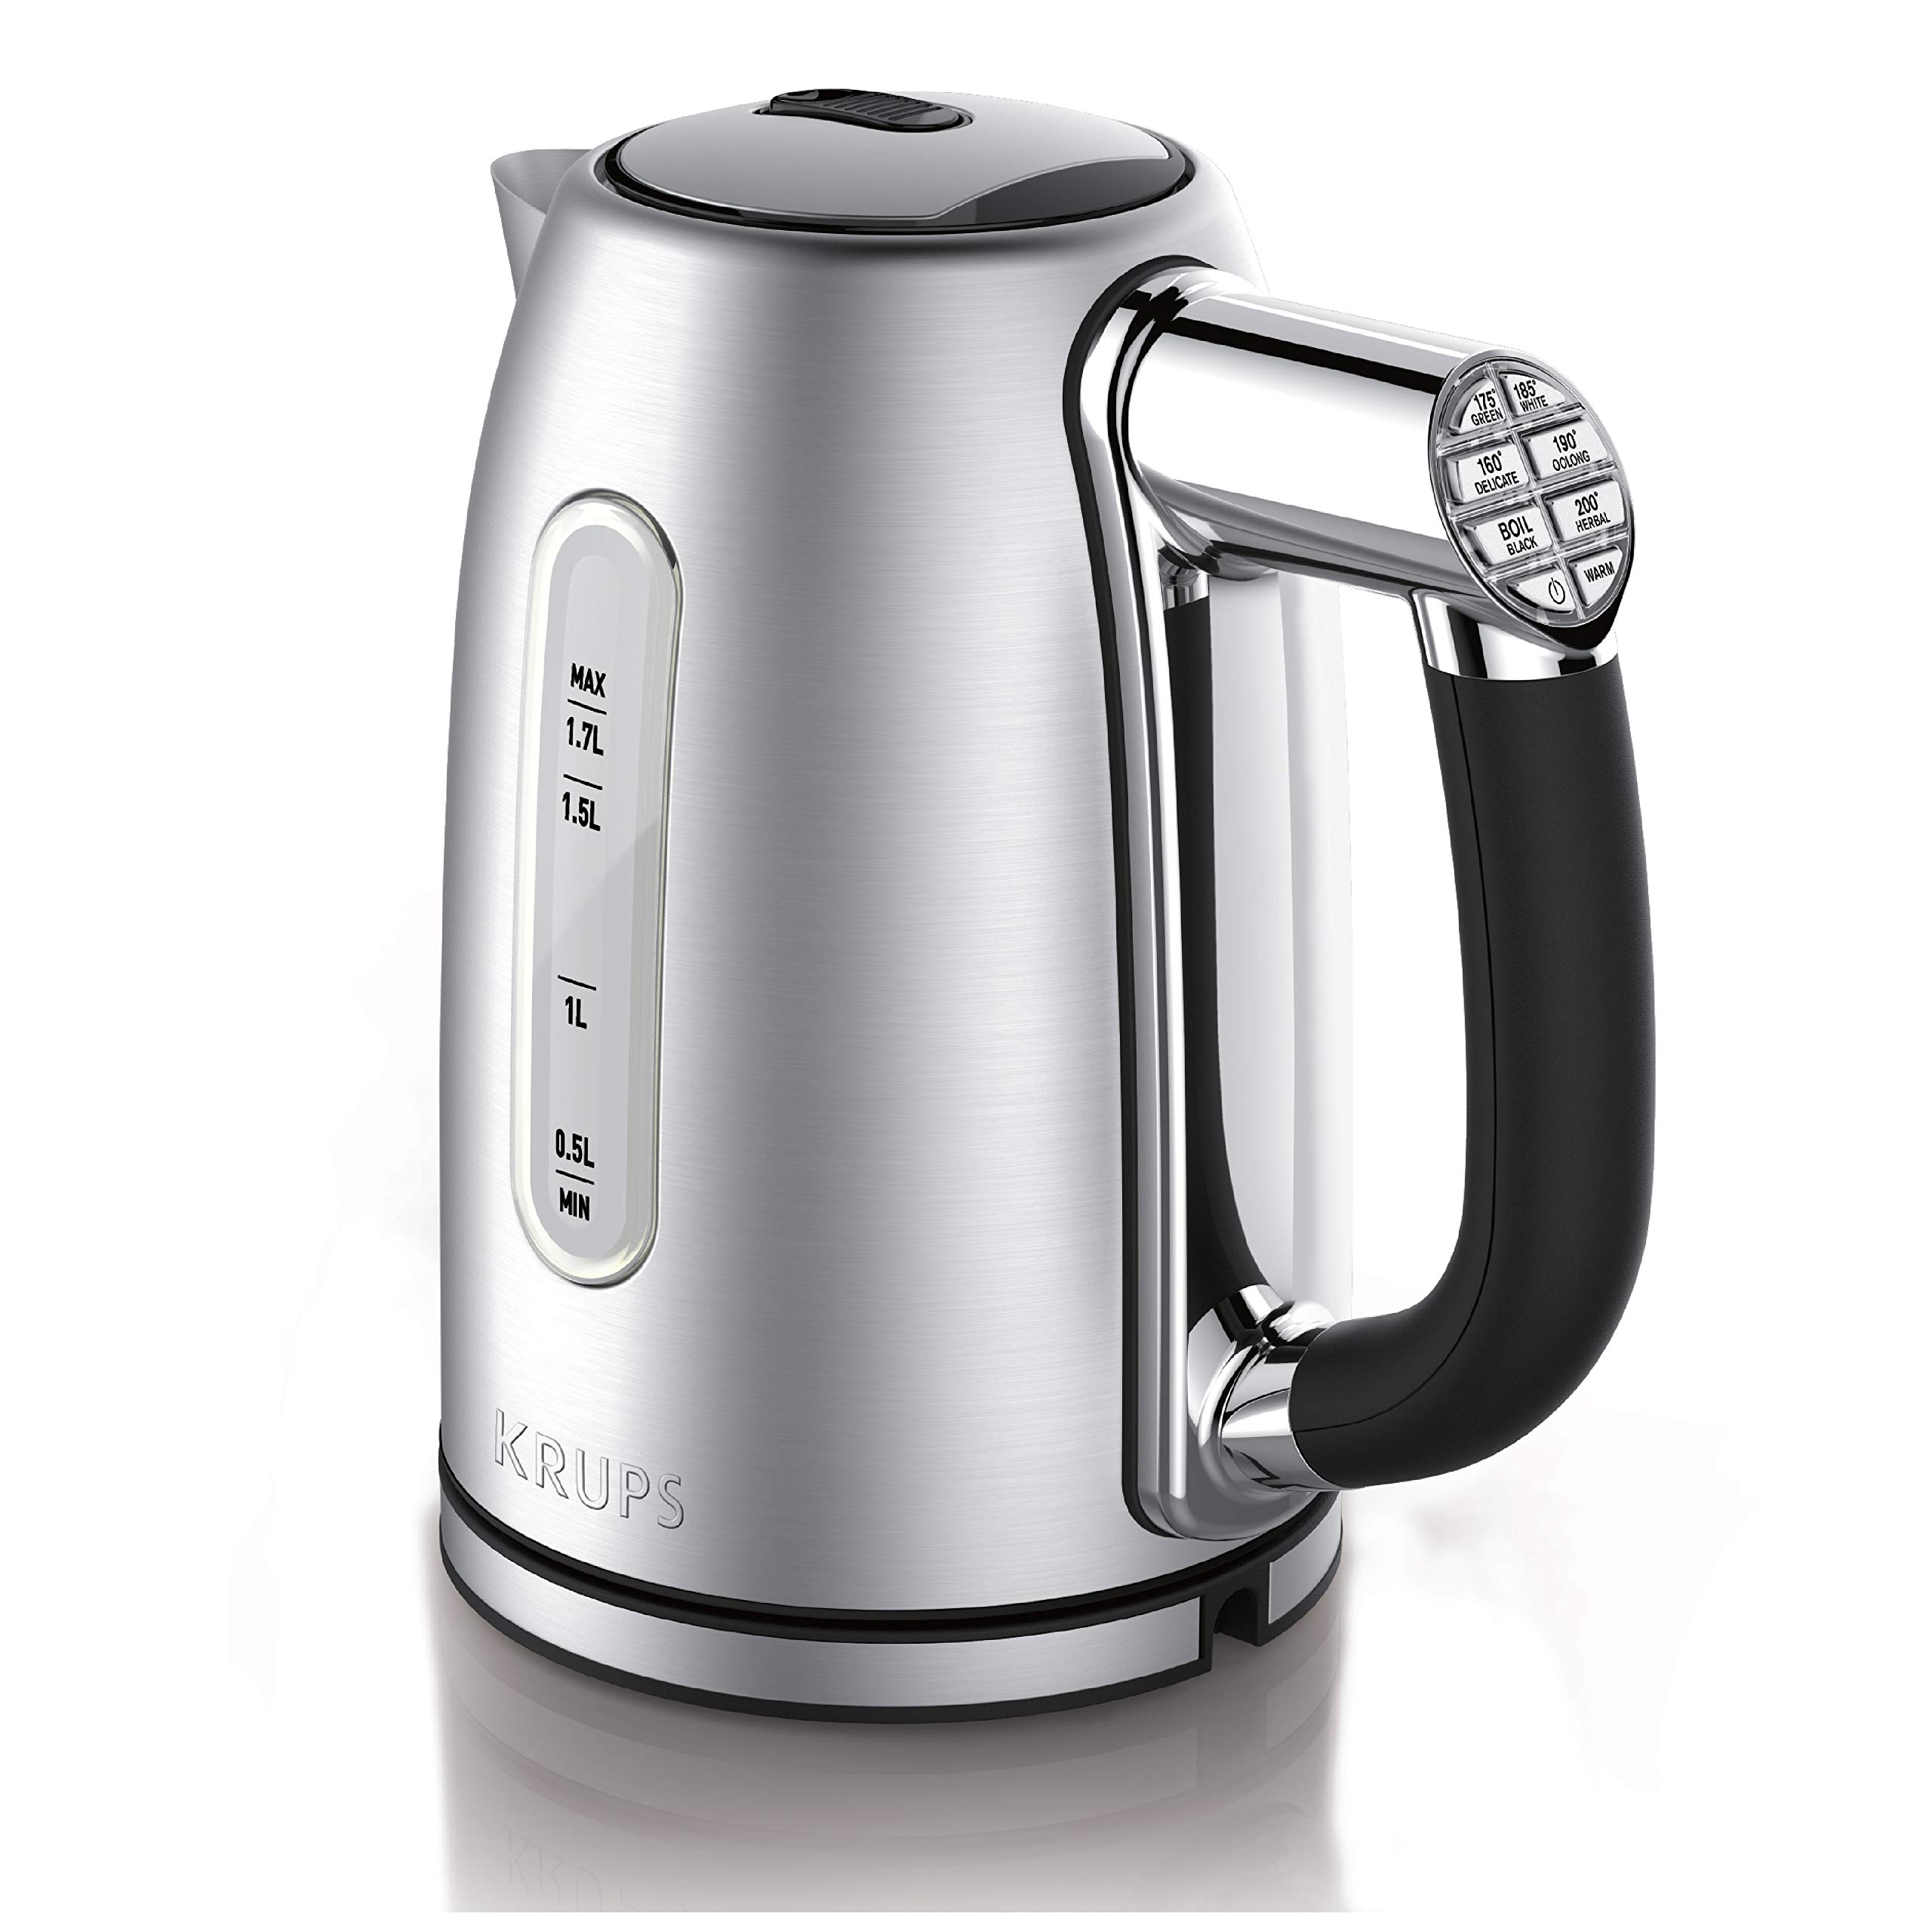 KRUPS BW710D51 Adjustable Temperature Stainless Steel Electric Kettle, 1.7-Liter, Silver